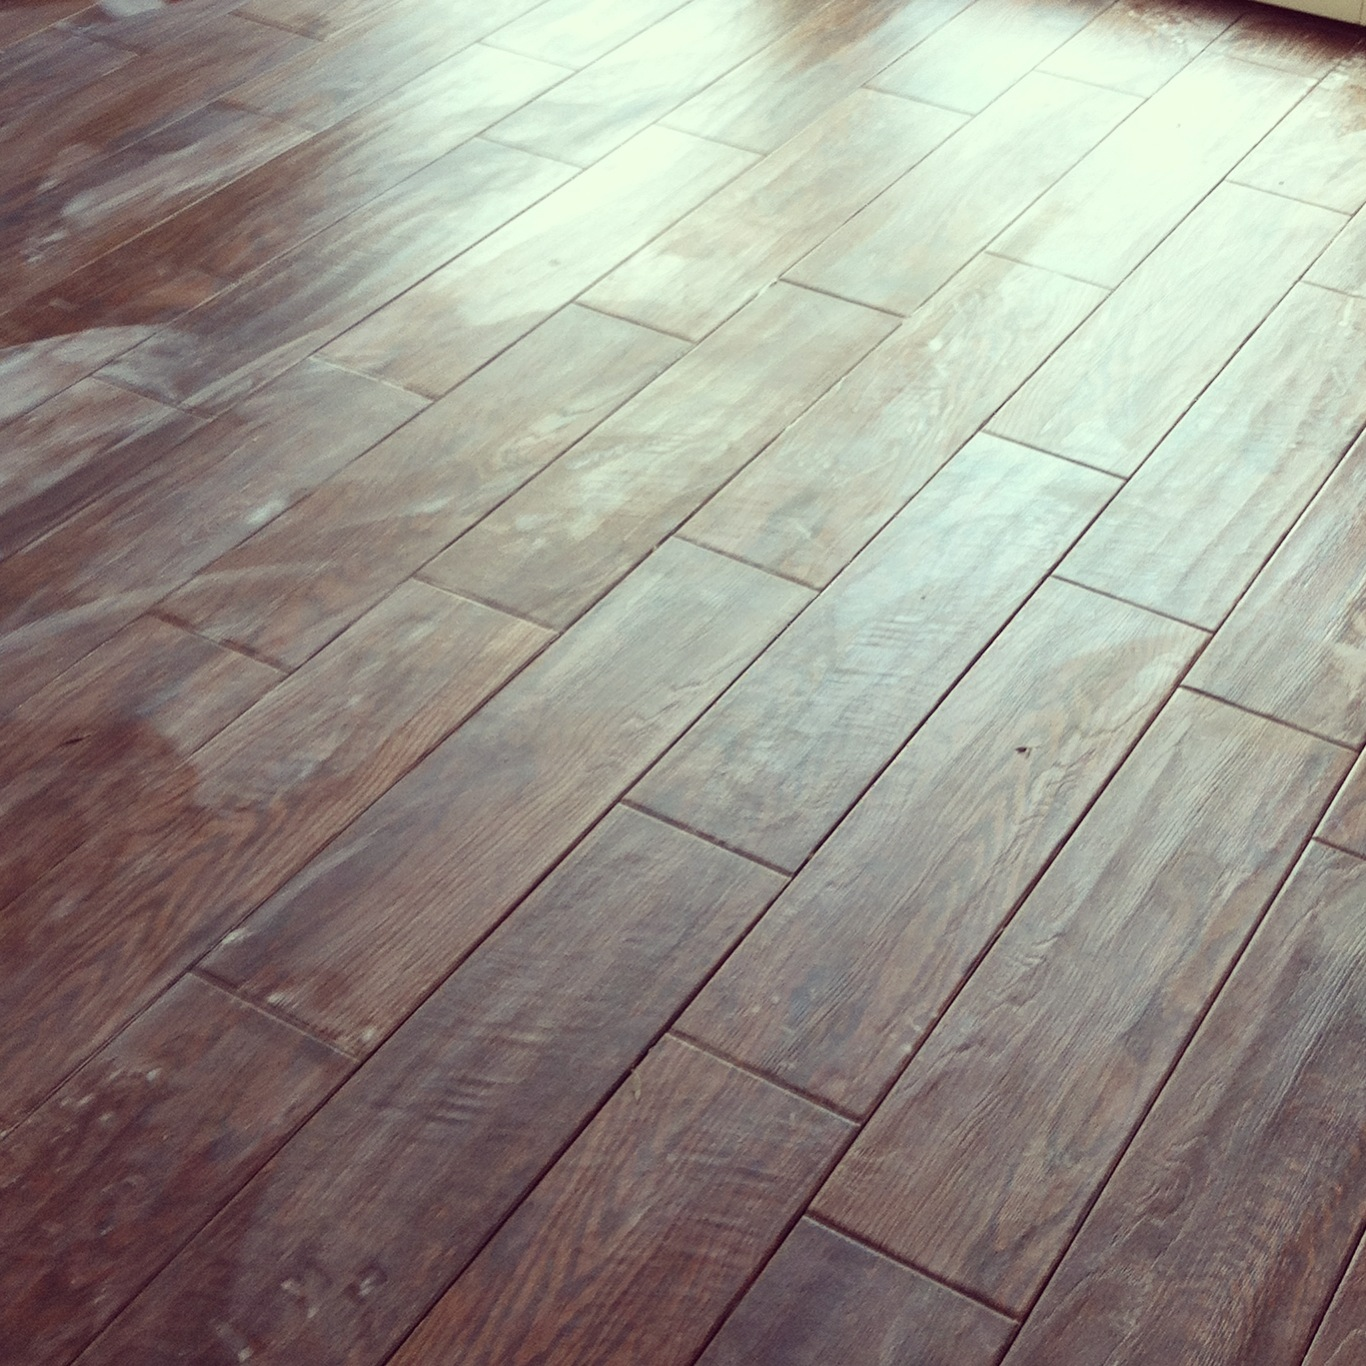 The Flooring Is In. [Wood Porcelain Tile]